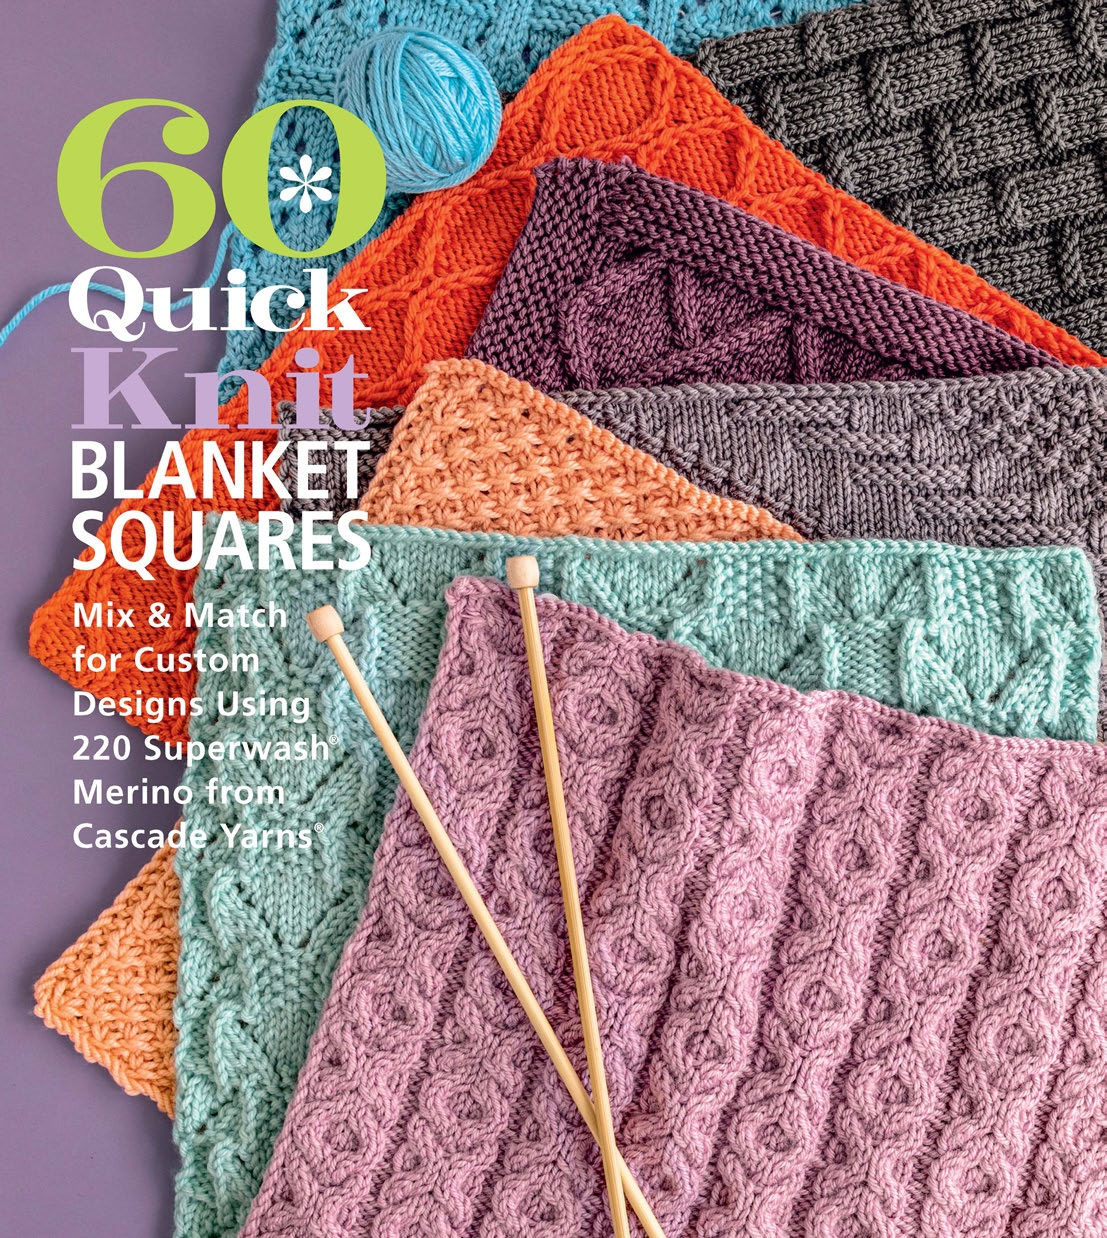 60 Quick Knit Blanket Squares